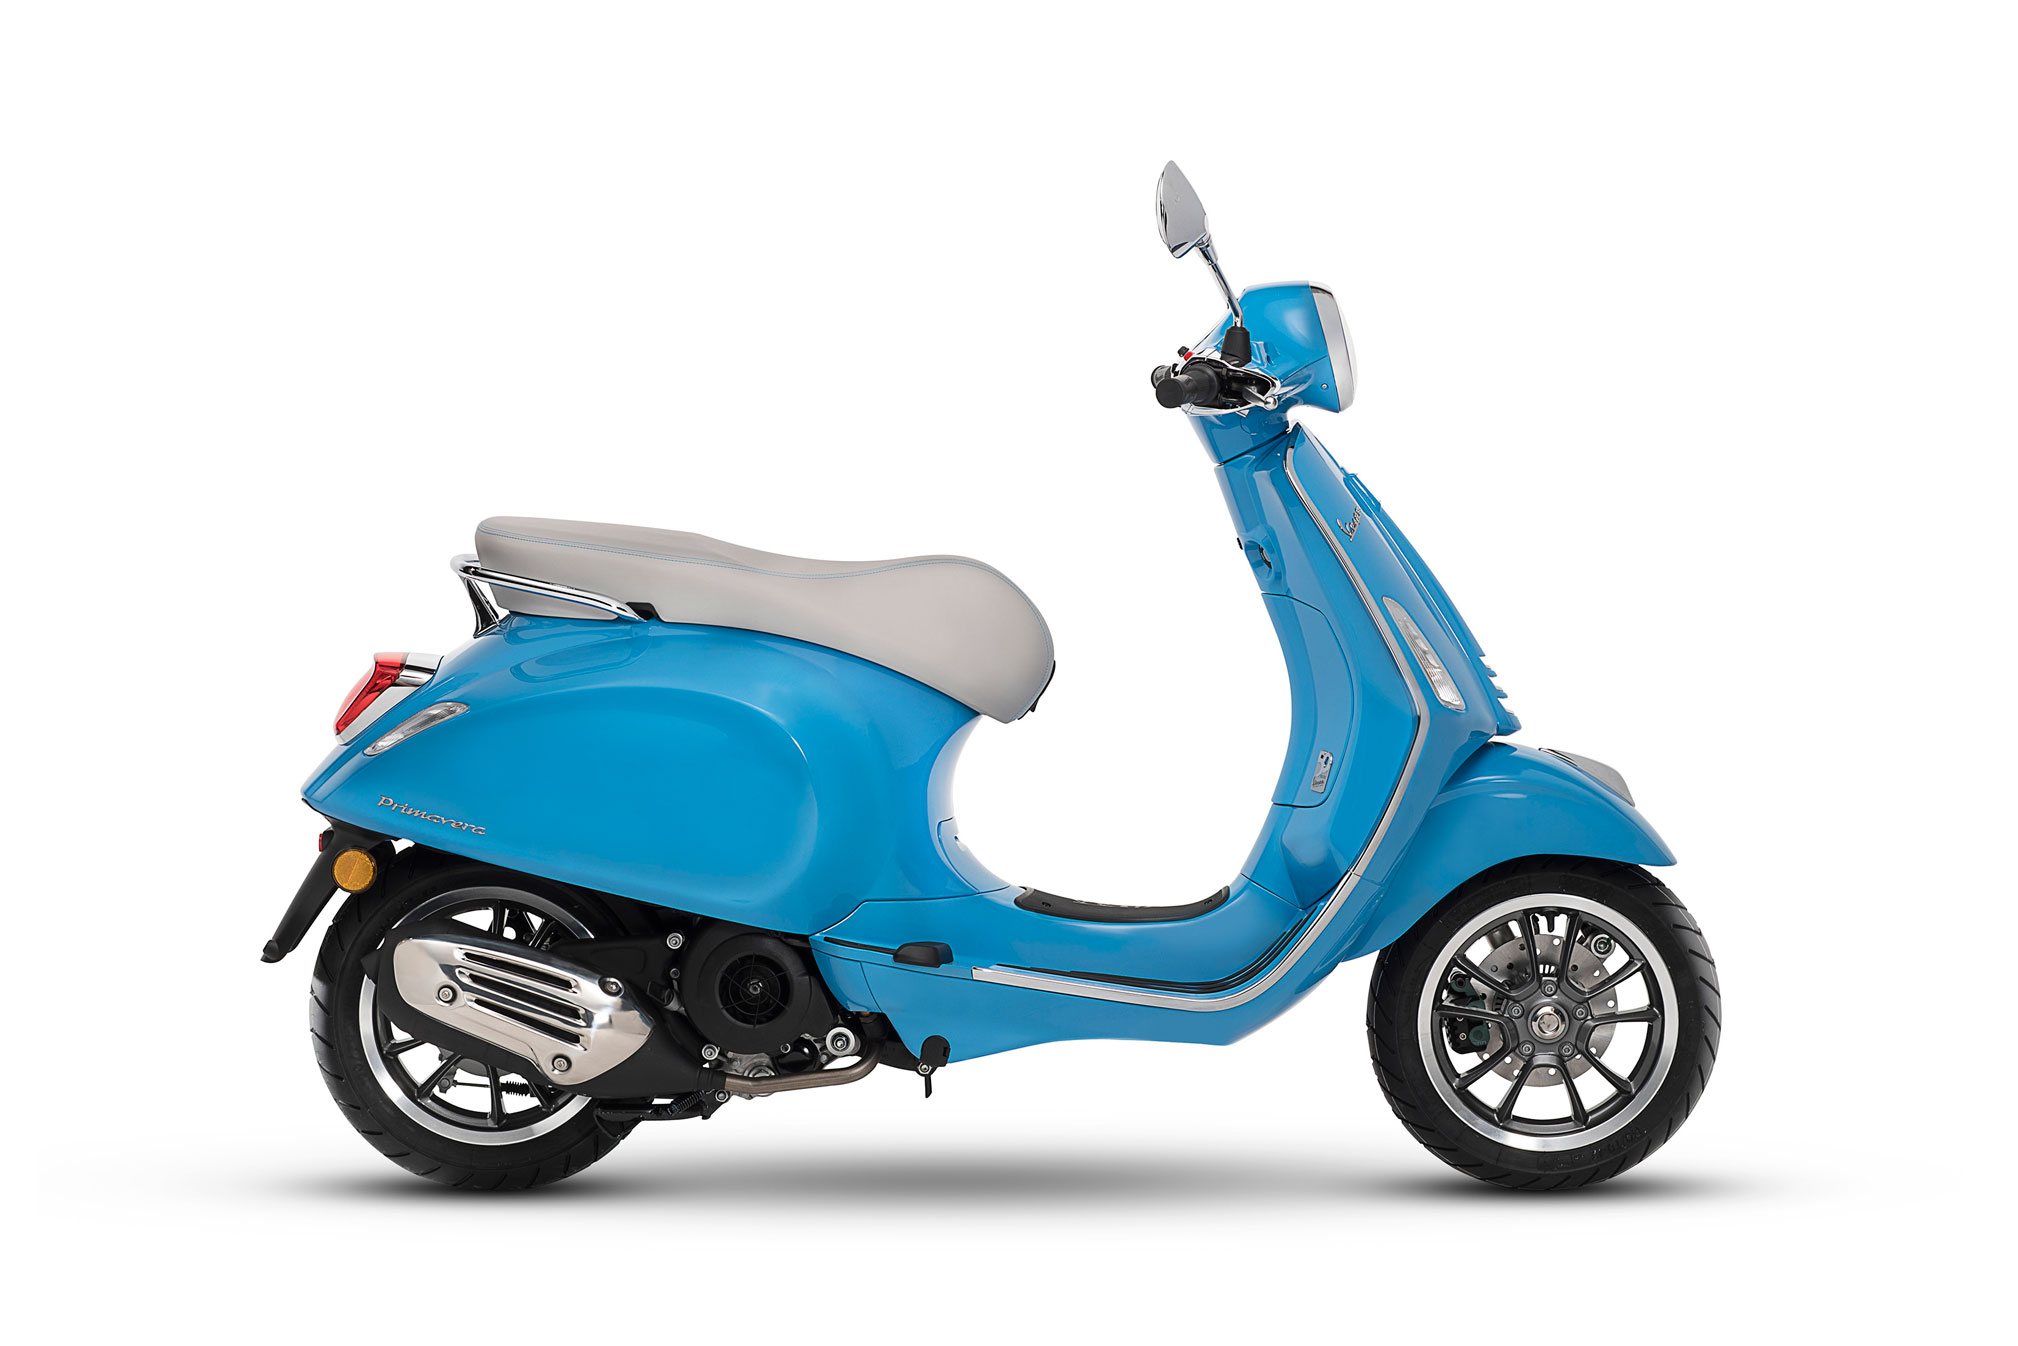 2018 vespa primavera 125 touring review totalmotorcycle. Black Bedroom Furniture Sets. Home Design Ideas